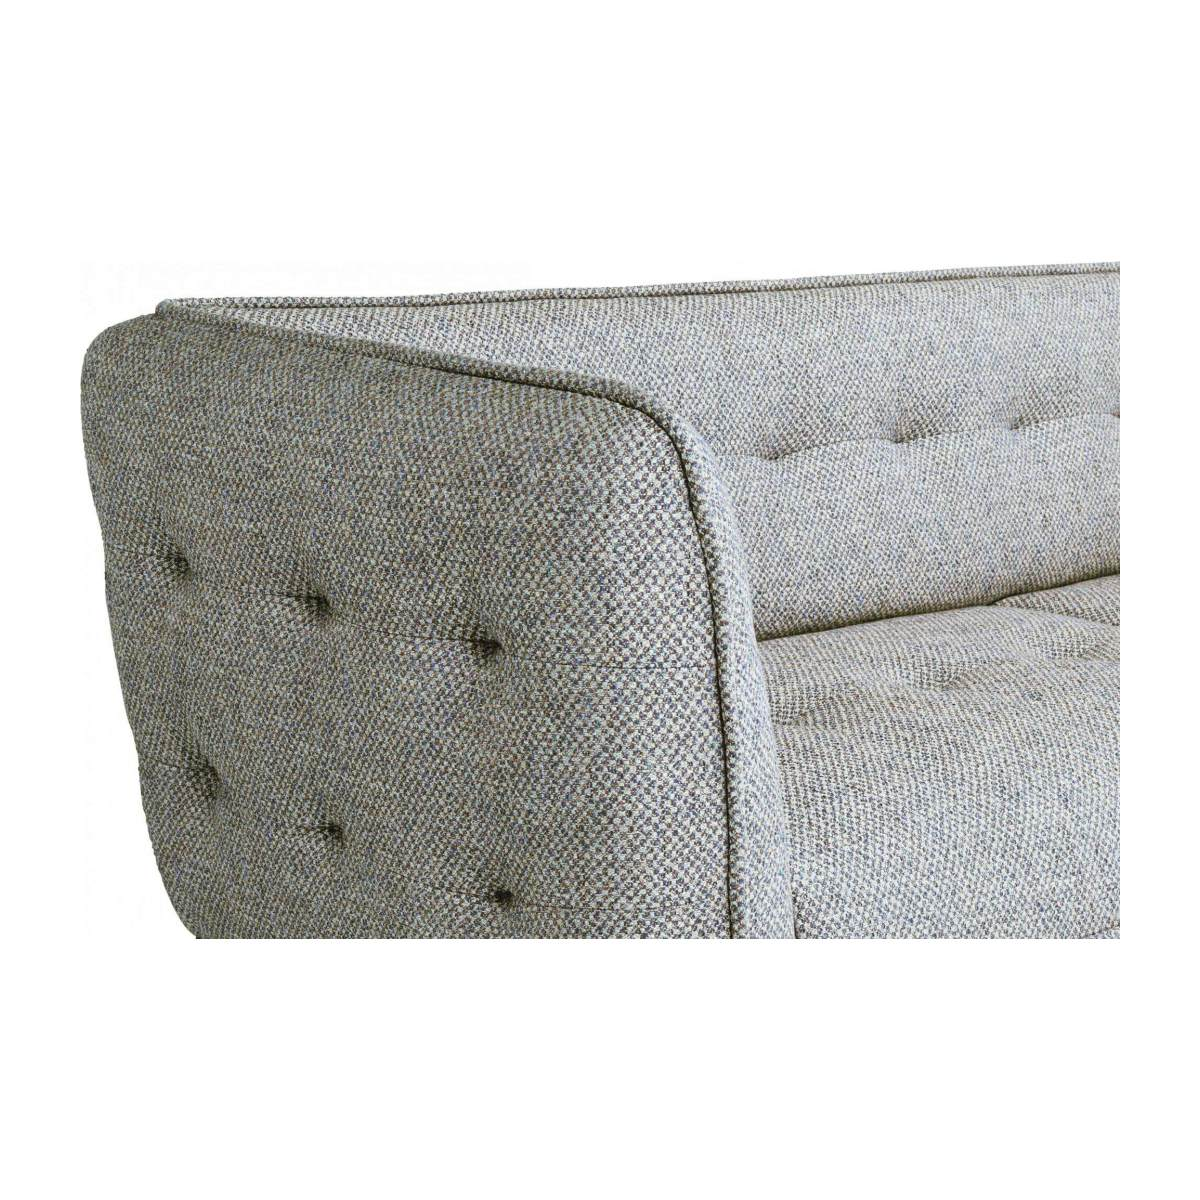 3 seater sofa in Bellagio fabric, organic green and dark legs n°5